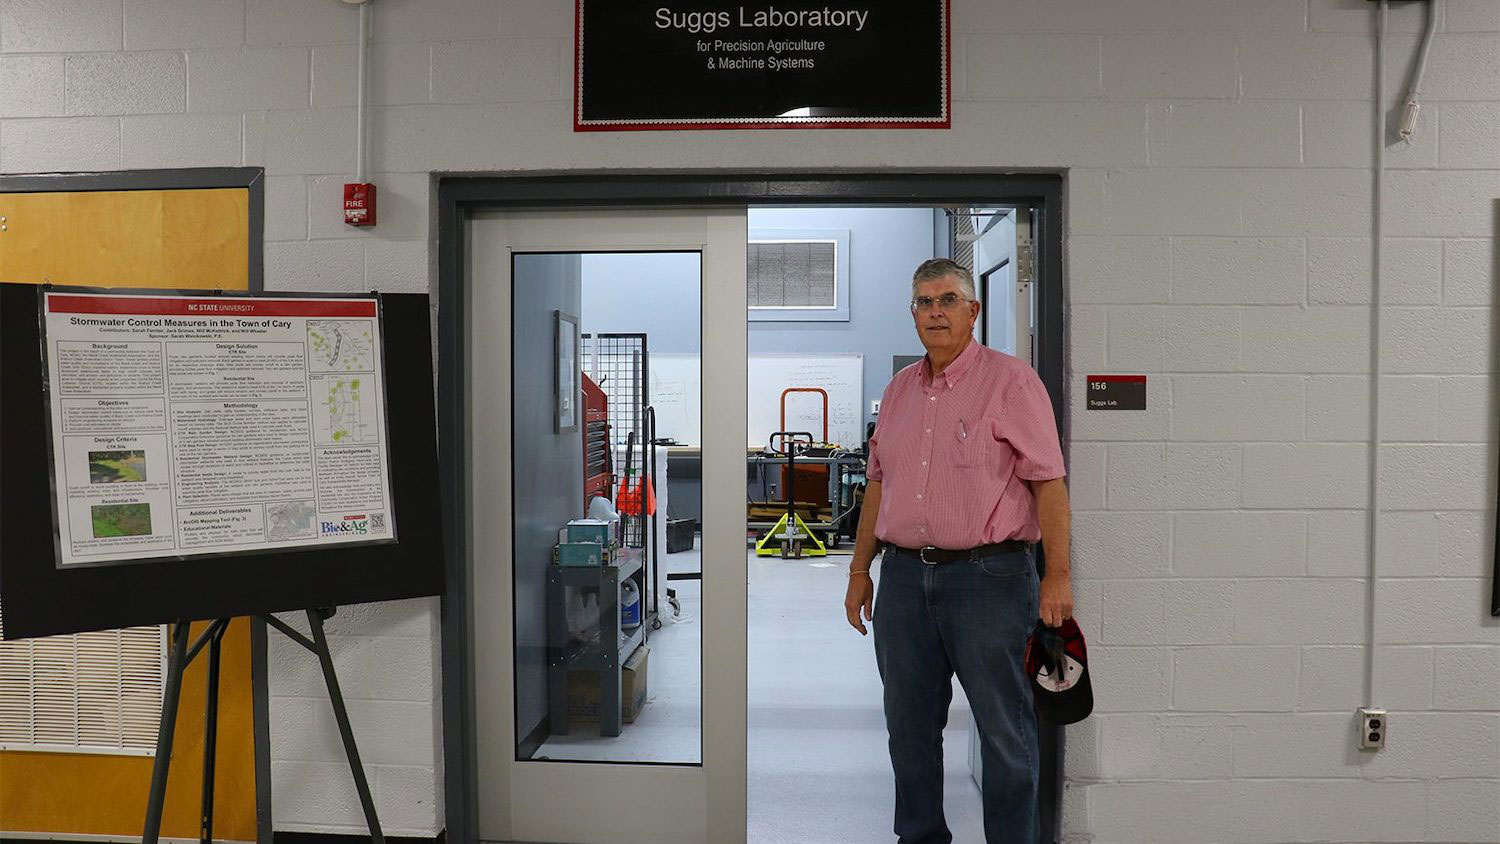 Gary Roberson in front of the Suggs laboratory